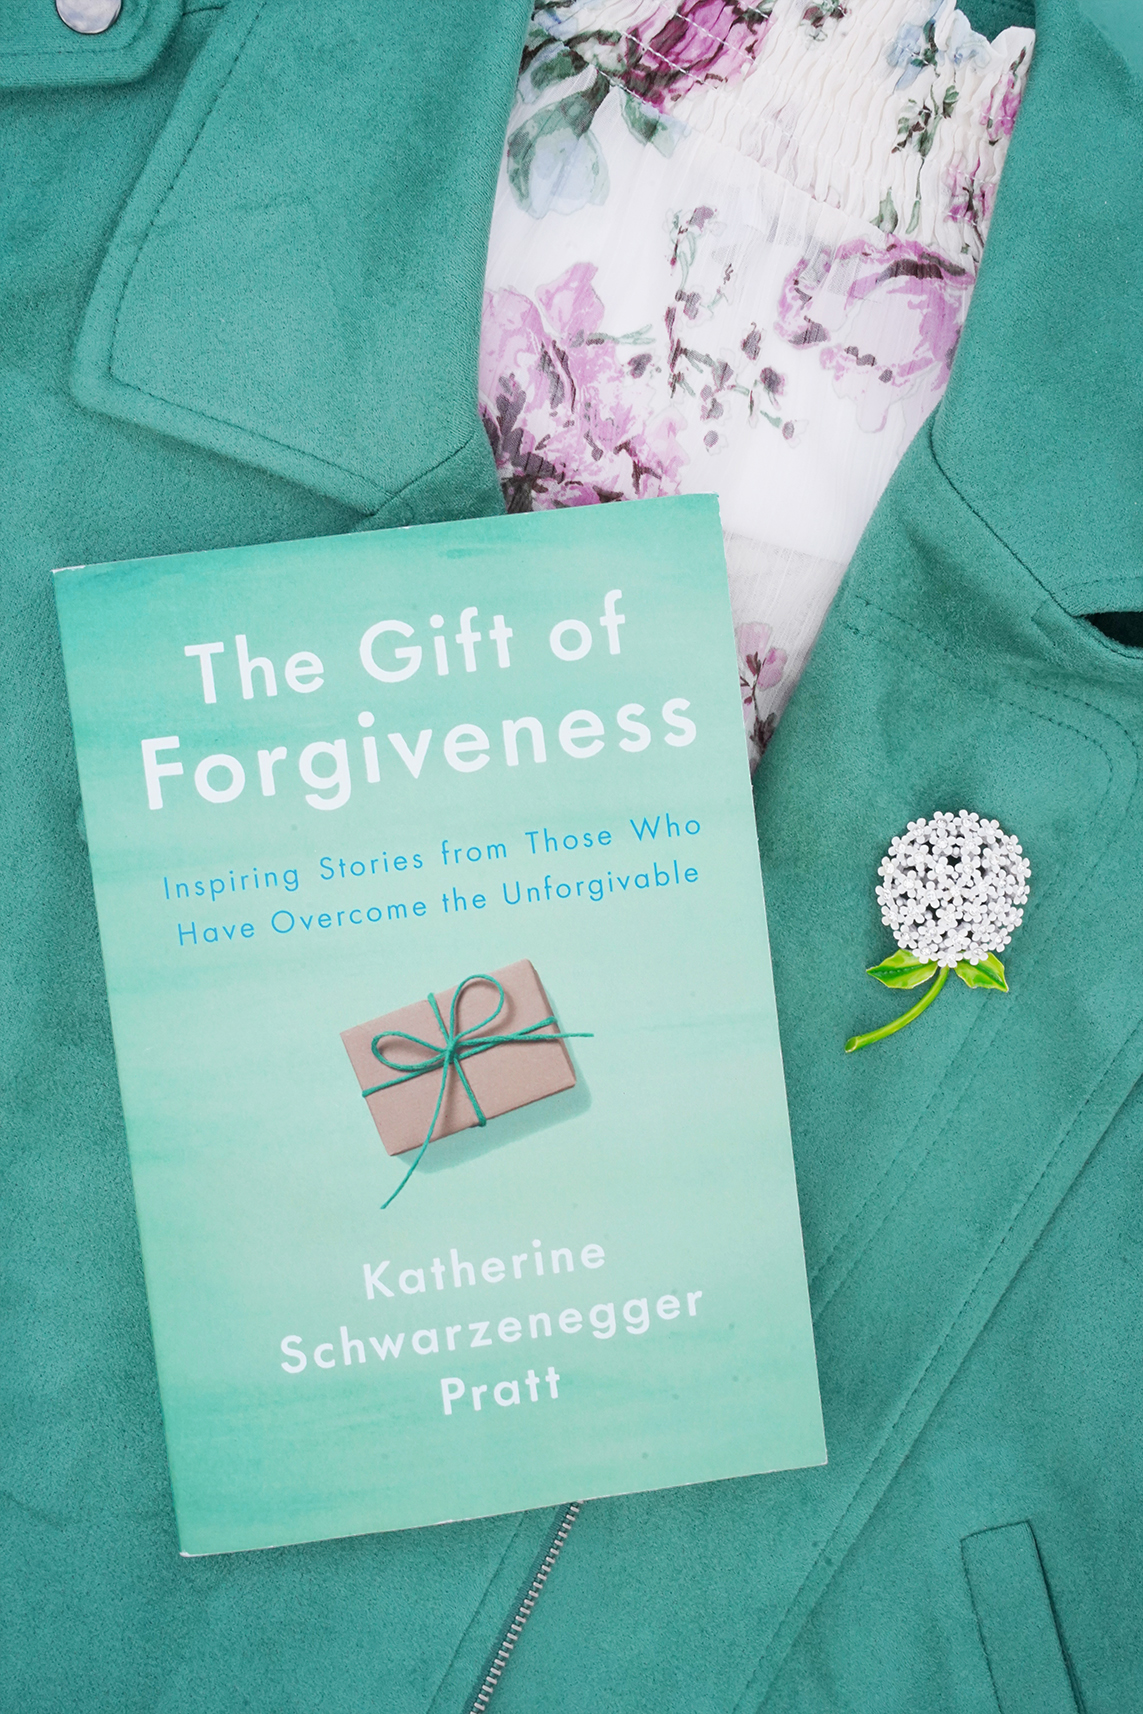 The Gift of Forgiveness Inspiring Stories from Those Who Have Overcome the Unforgivable Book by Katherine Schwarzenegger, Green Moto Jacket by Lauren Conrad, Weiss Flower Cluster Antique Rhinestone Pin Brooch